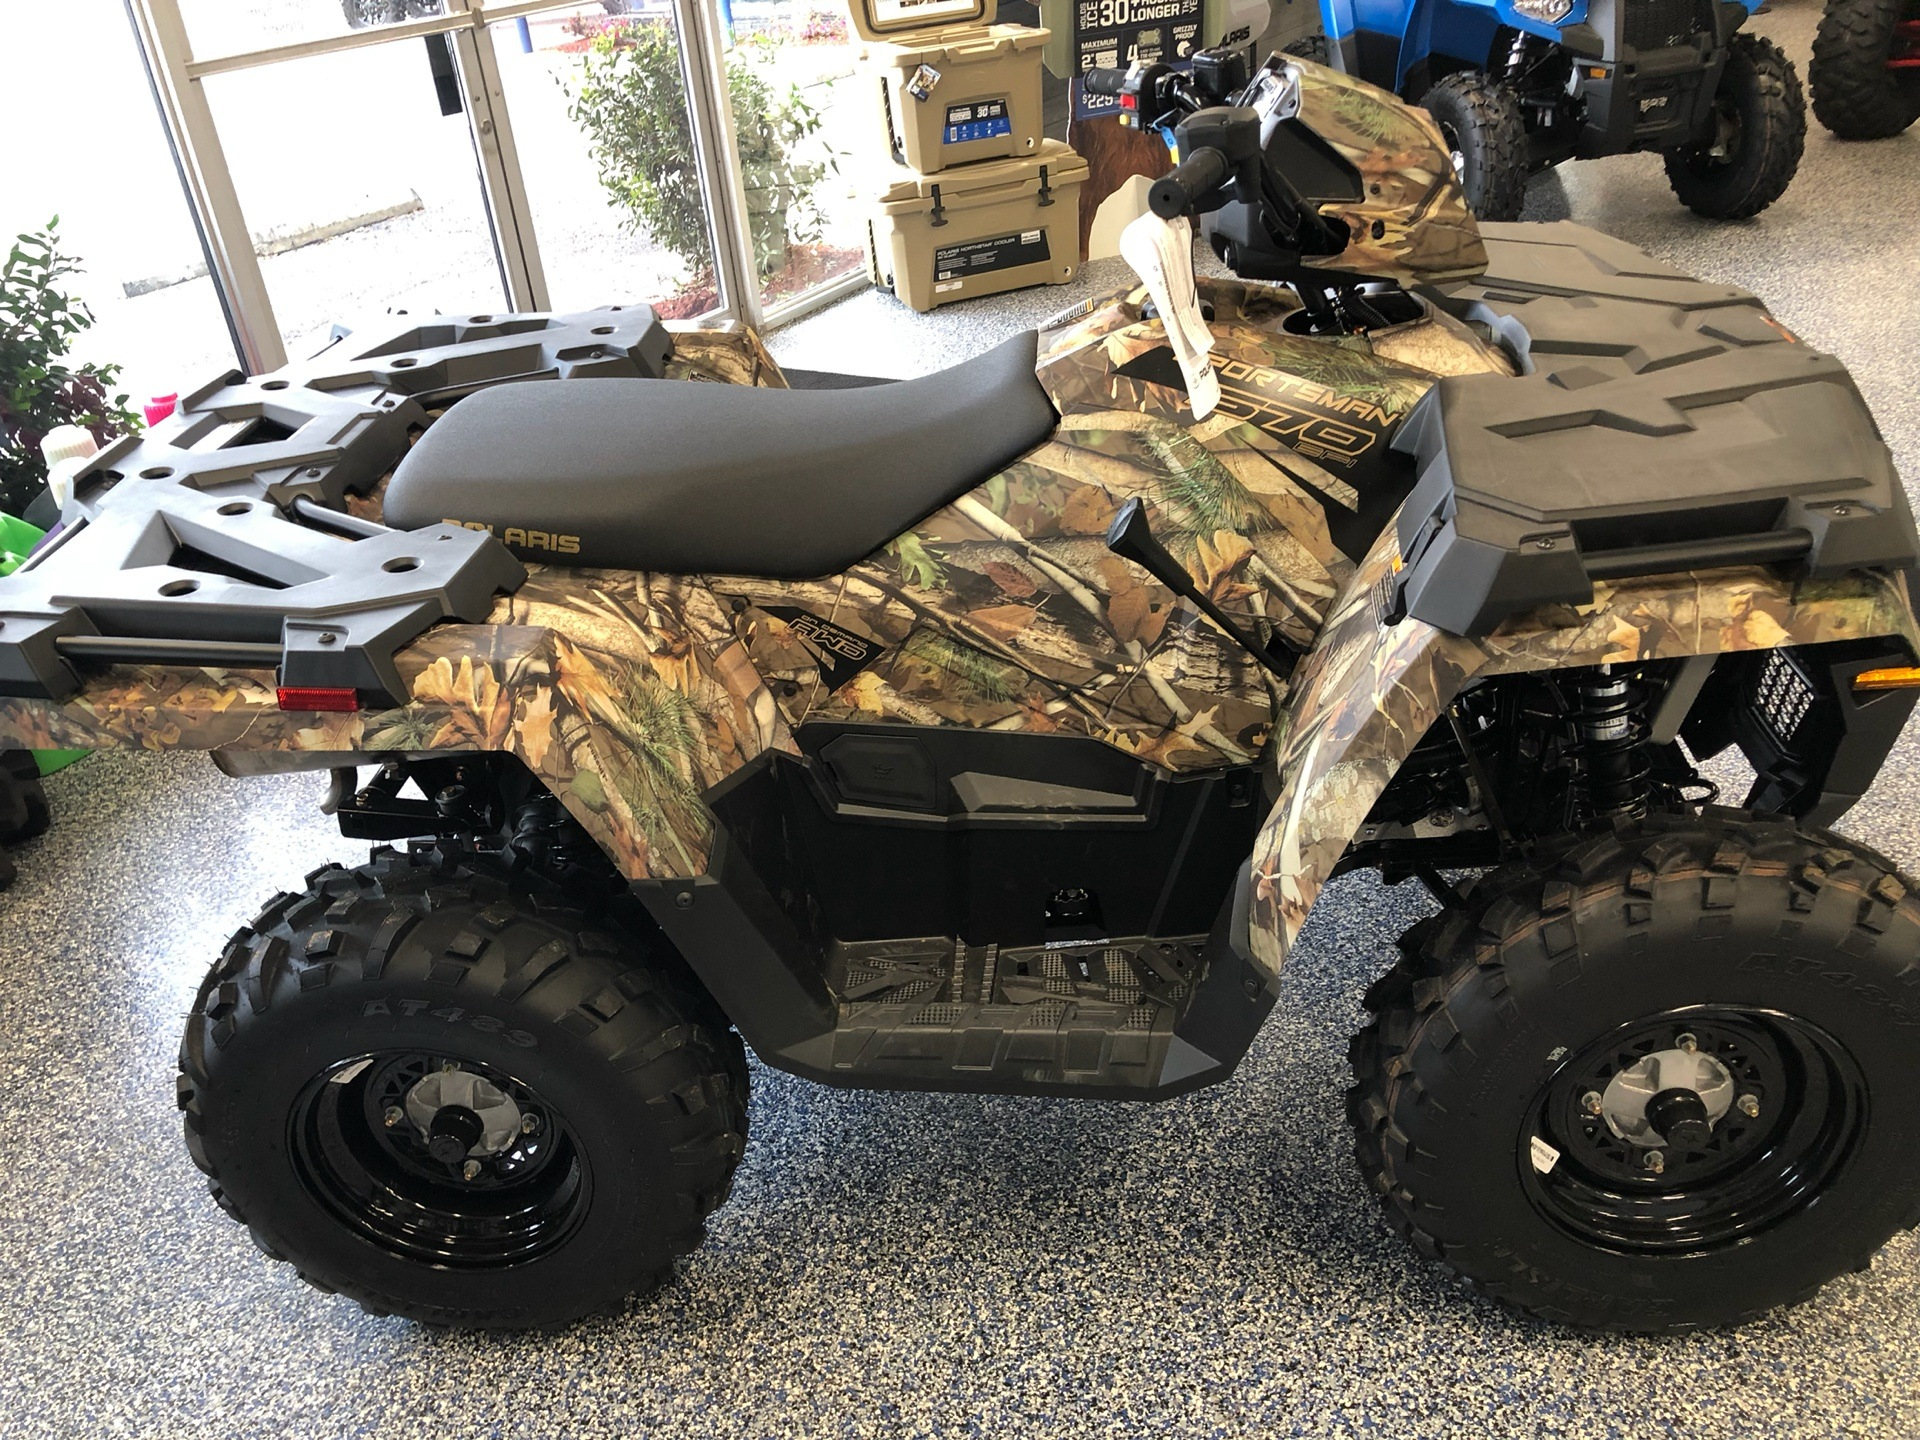 2019 Polaris Sportsman 570 Camo for sale 4784